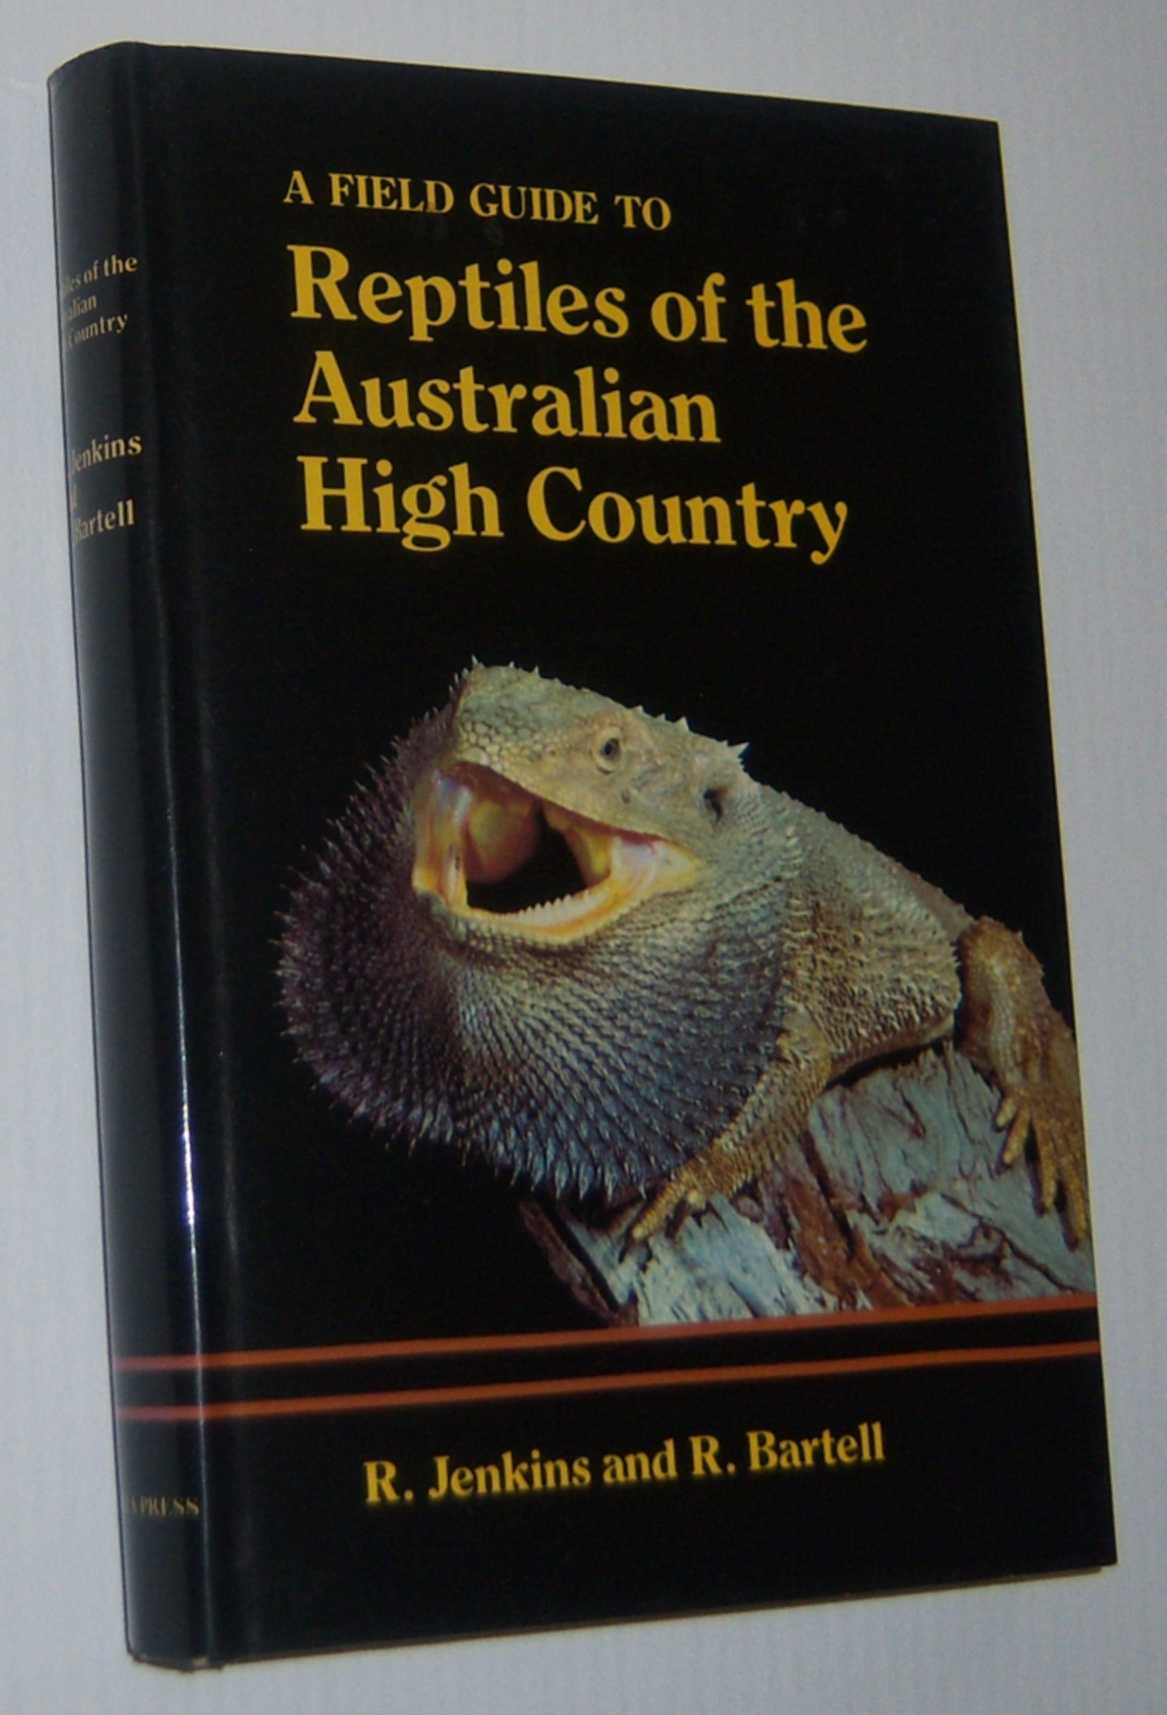 Image for A FIELD GUIDE TO REPTILES OF THE AUSTRALIAN HIGH COUNTRY